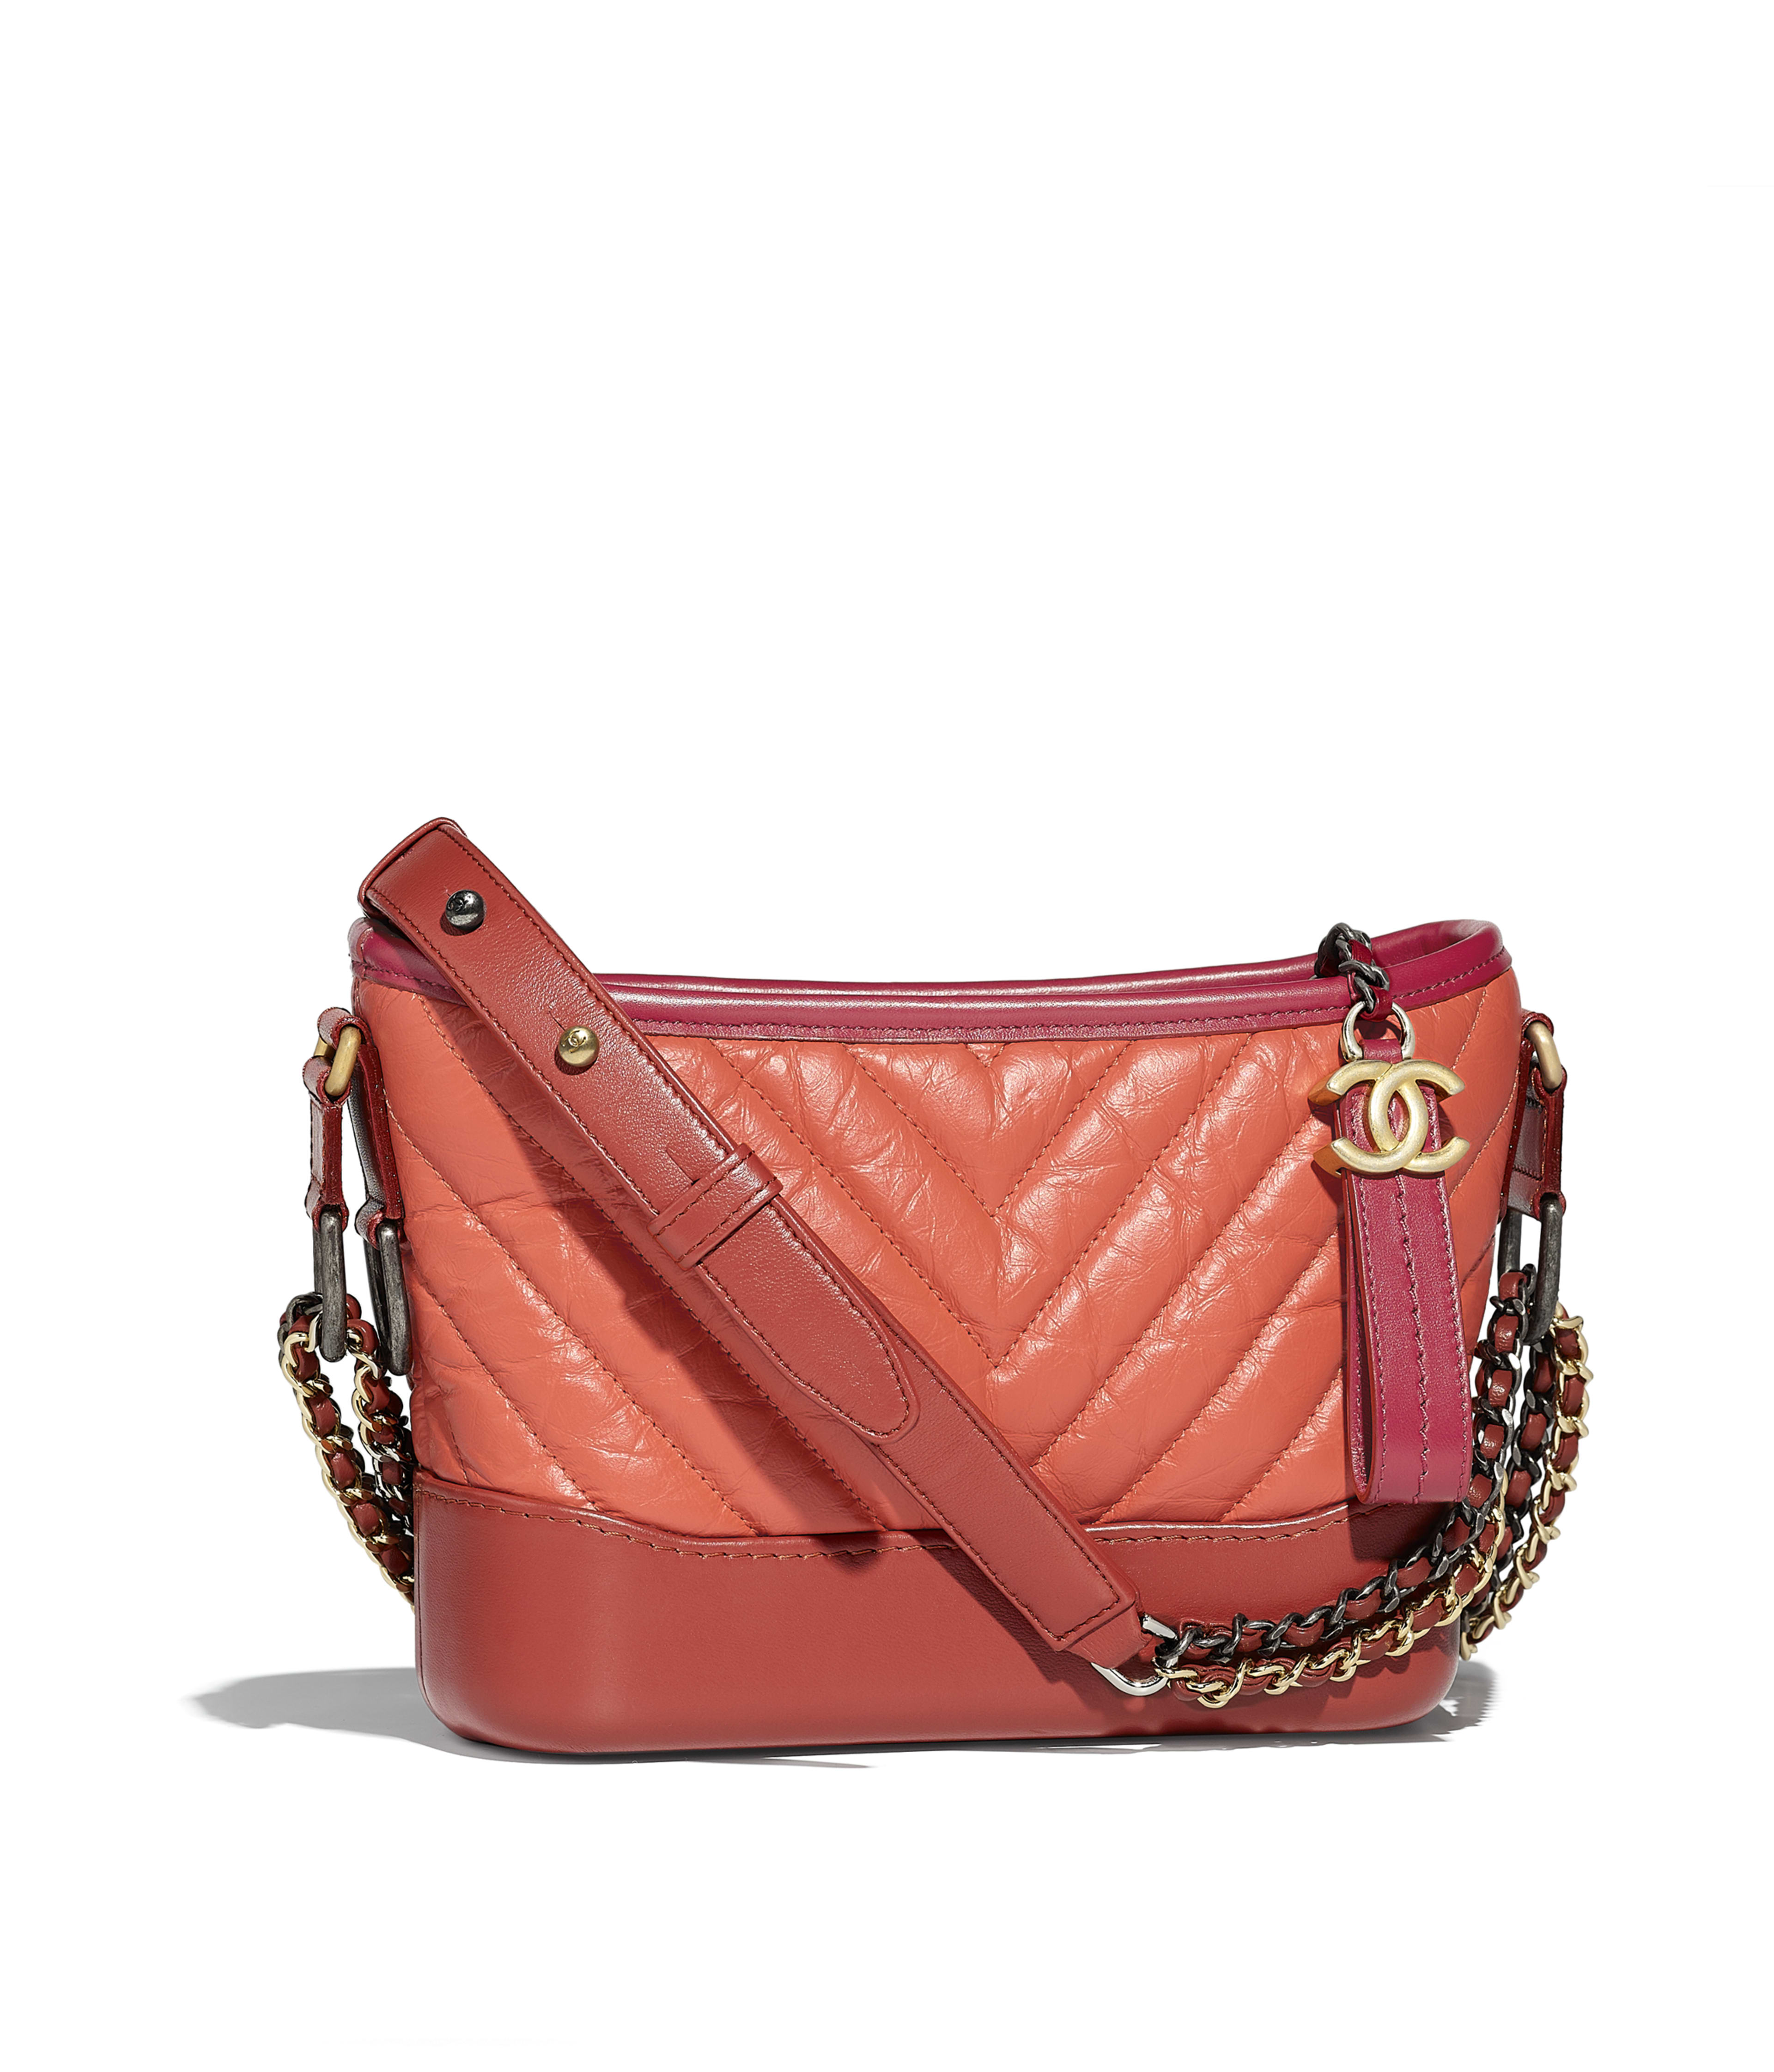 Chanel S Gabrielle Small Hobo Bag Aged Calfskin Smooth Silver Tone Gold Metal Orange Dark Red Ref A91810y83983k1164